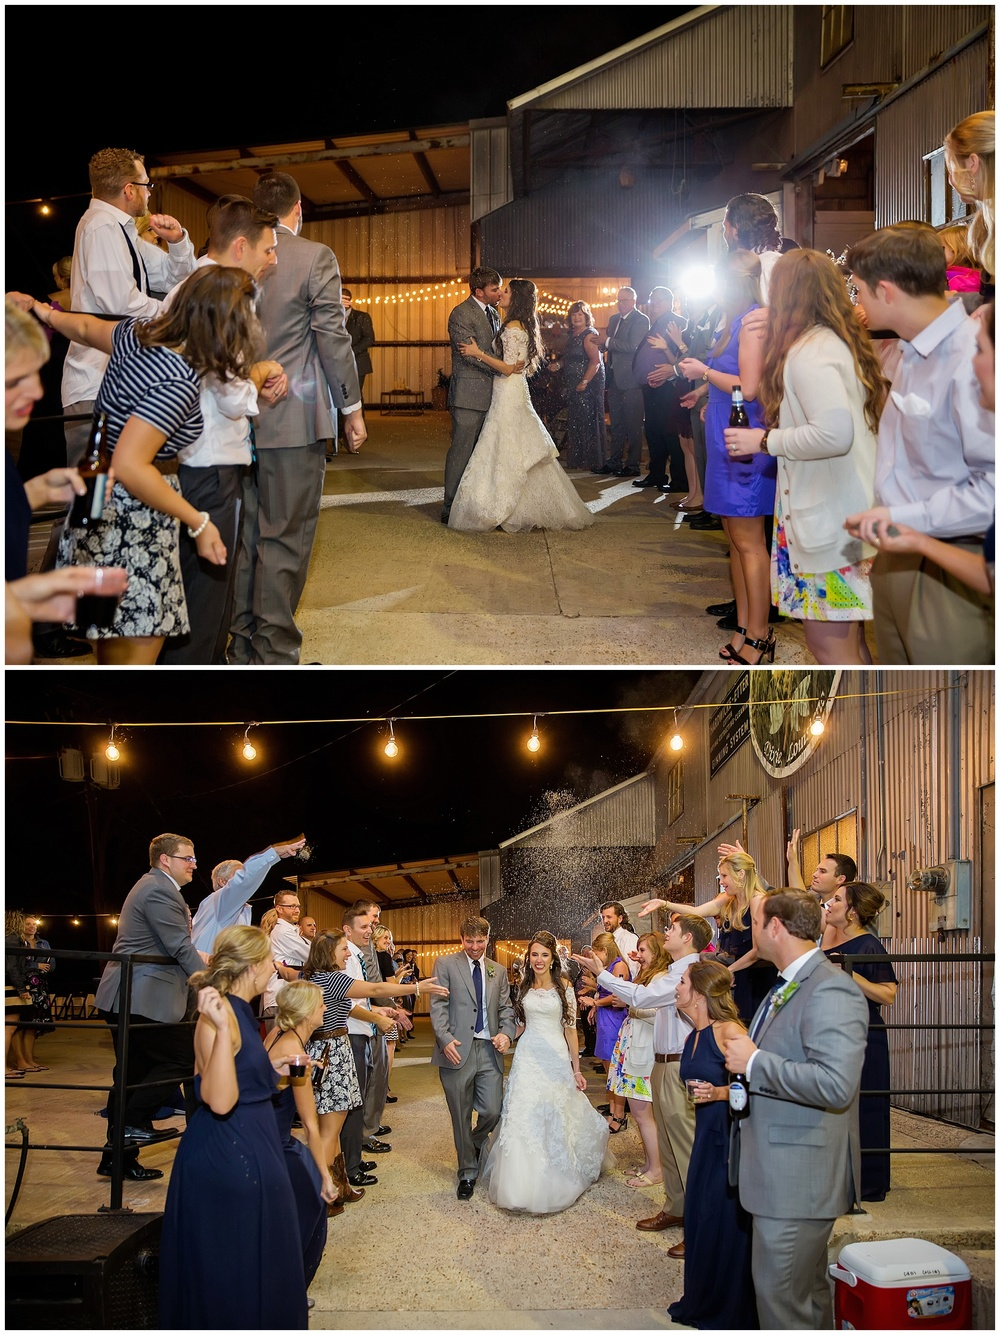 Kinler_DixieGin_Shreveport_Wedding_81.jpg